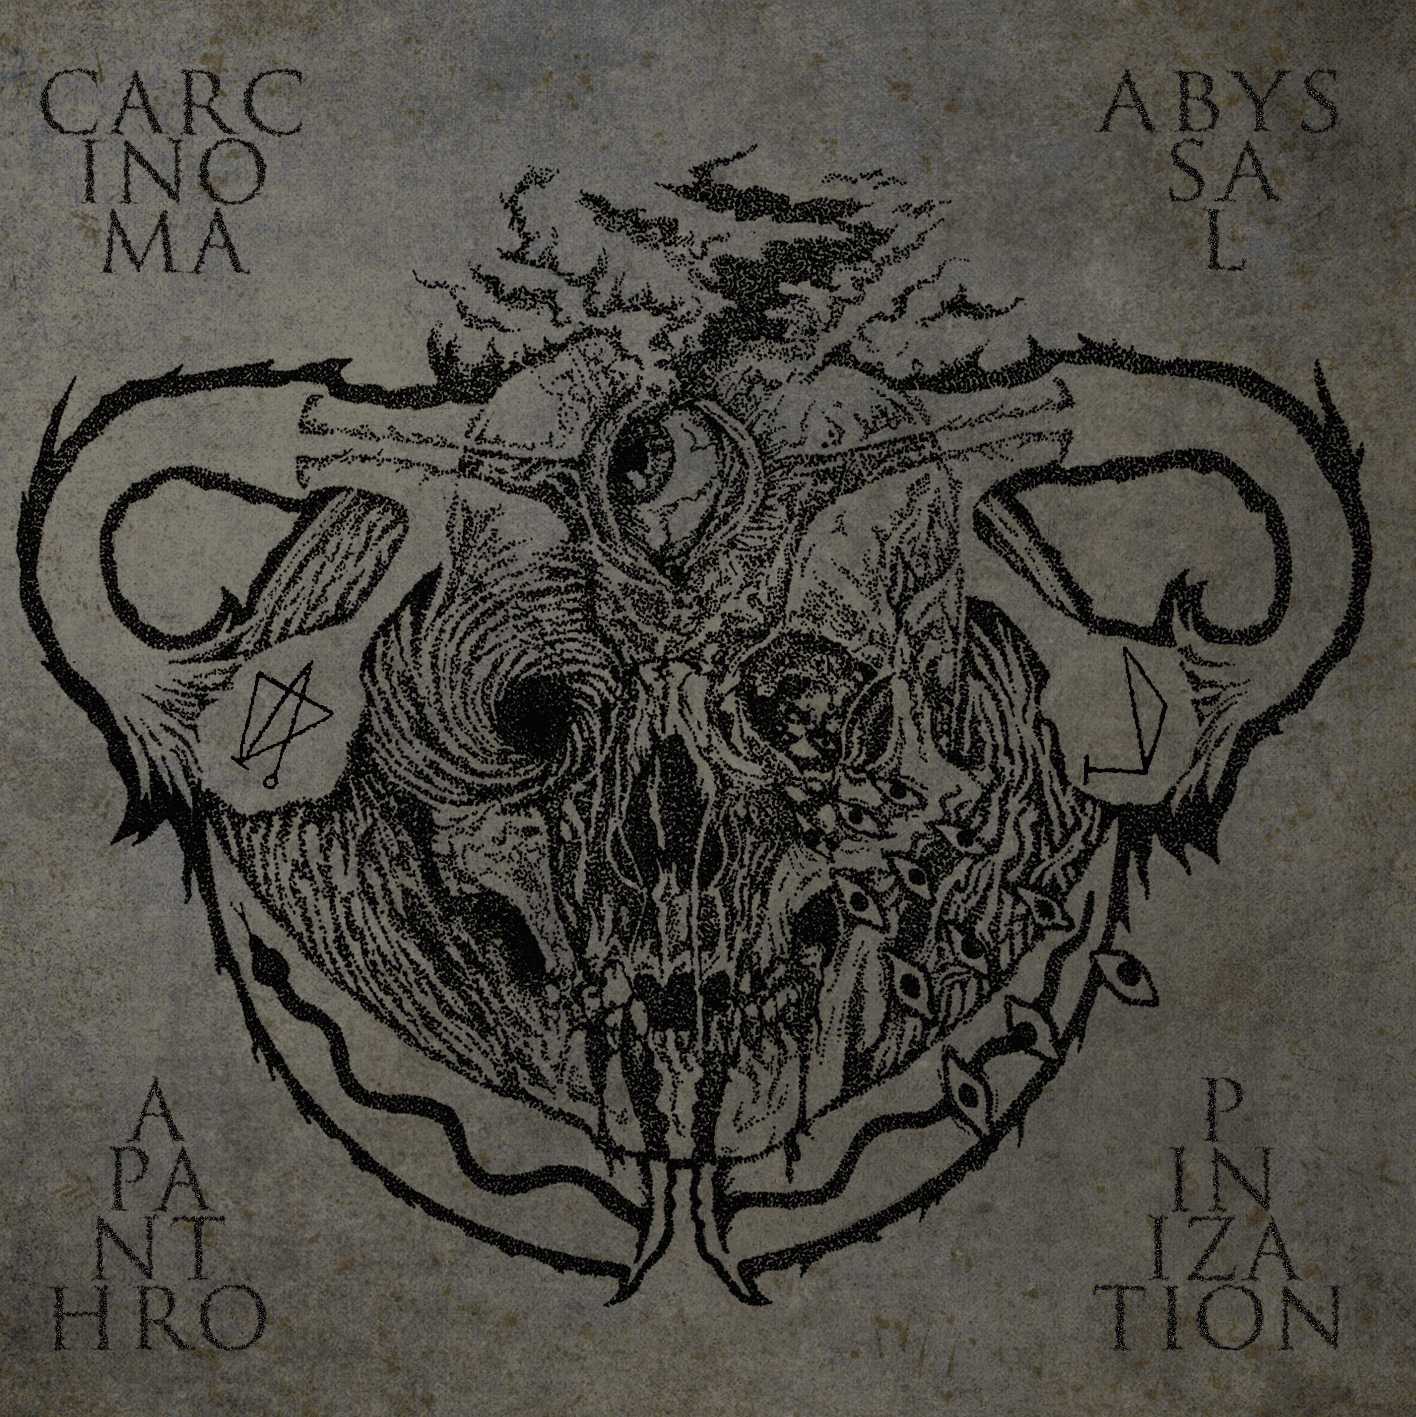 Exclusive Double Interview - Abyssal + Carcinoma.